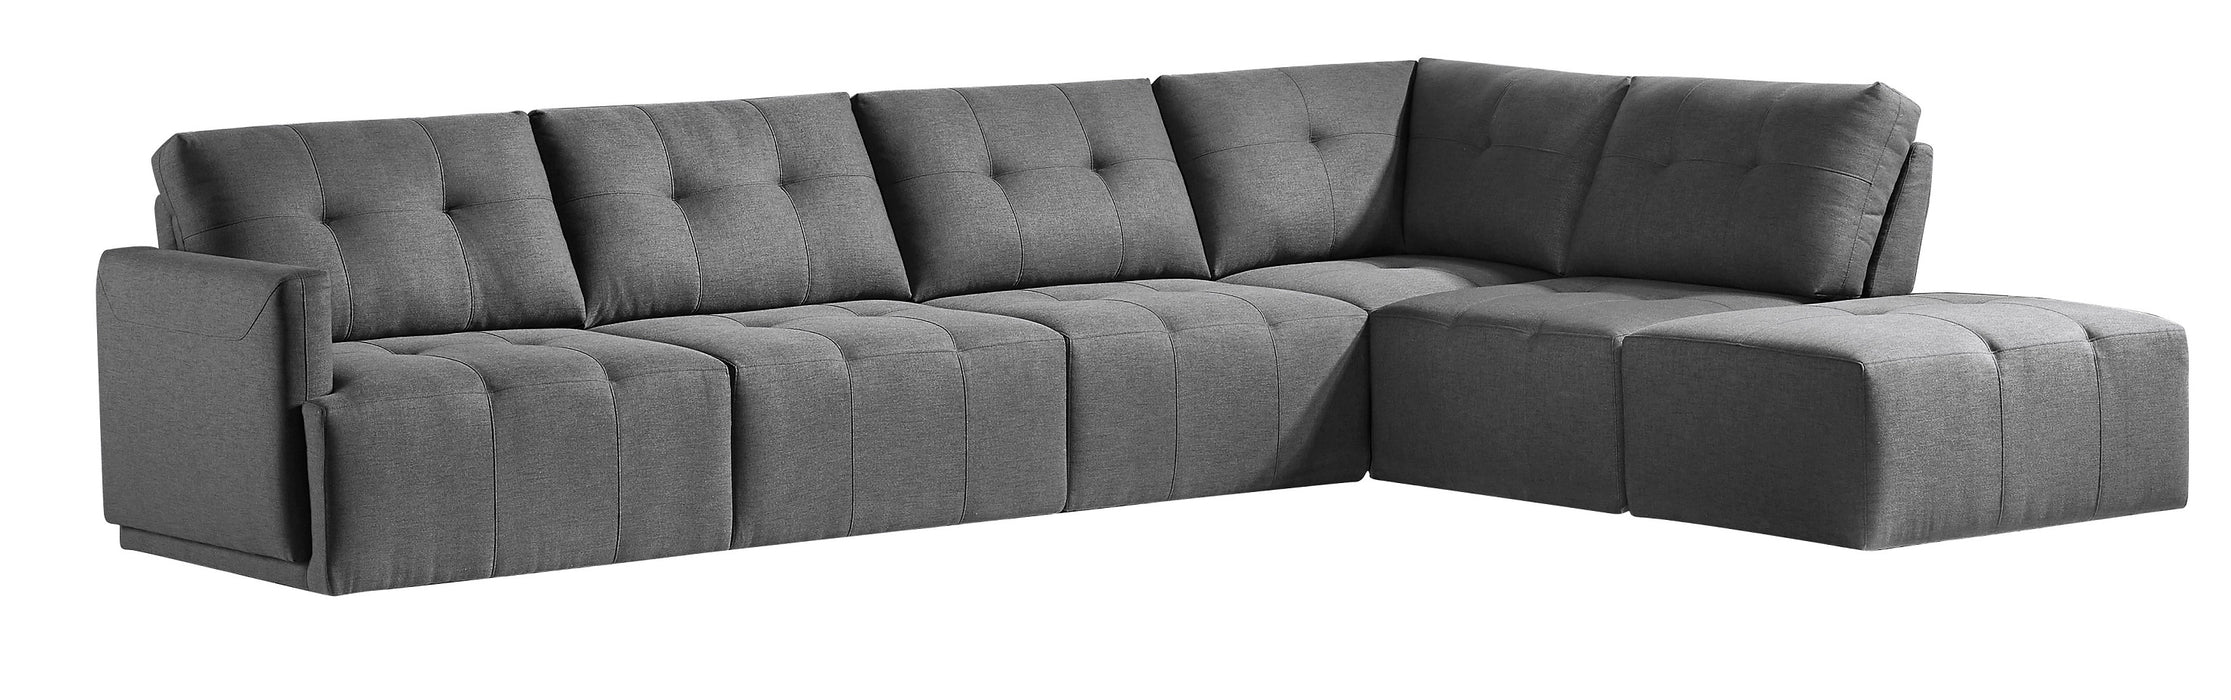 New Classic Furniture | Living Sectional in New Jersey, NJ 6400